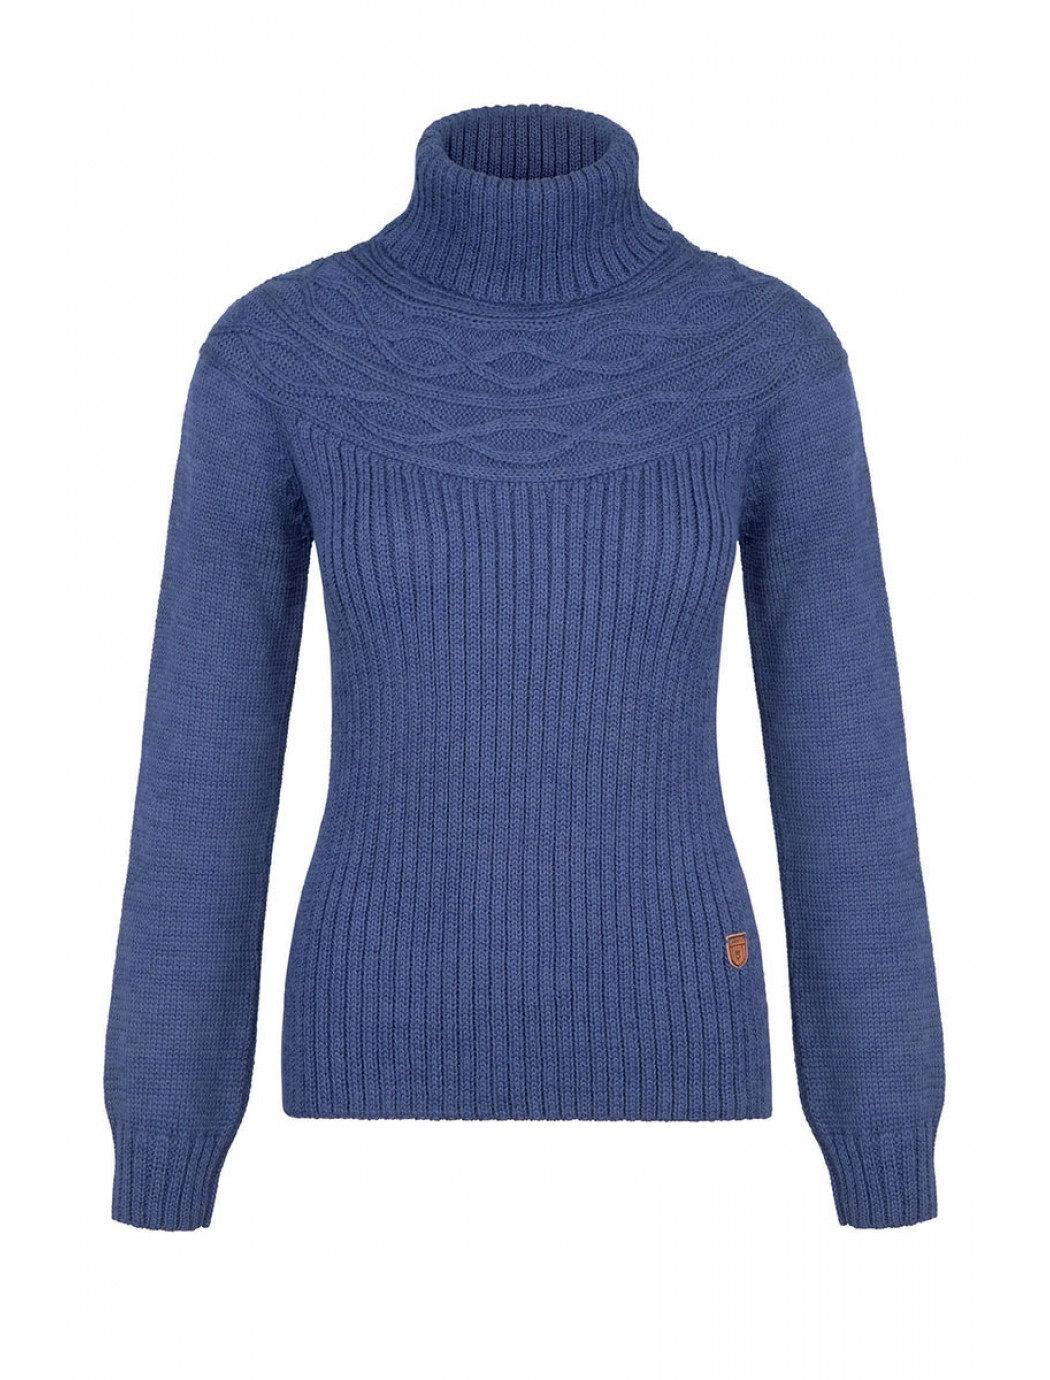 claddagh-womens-knits-cottons-navy